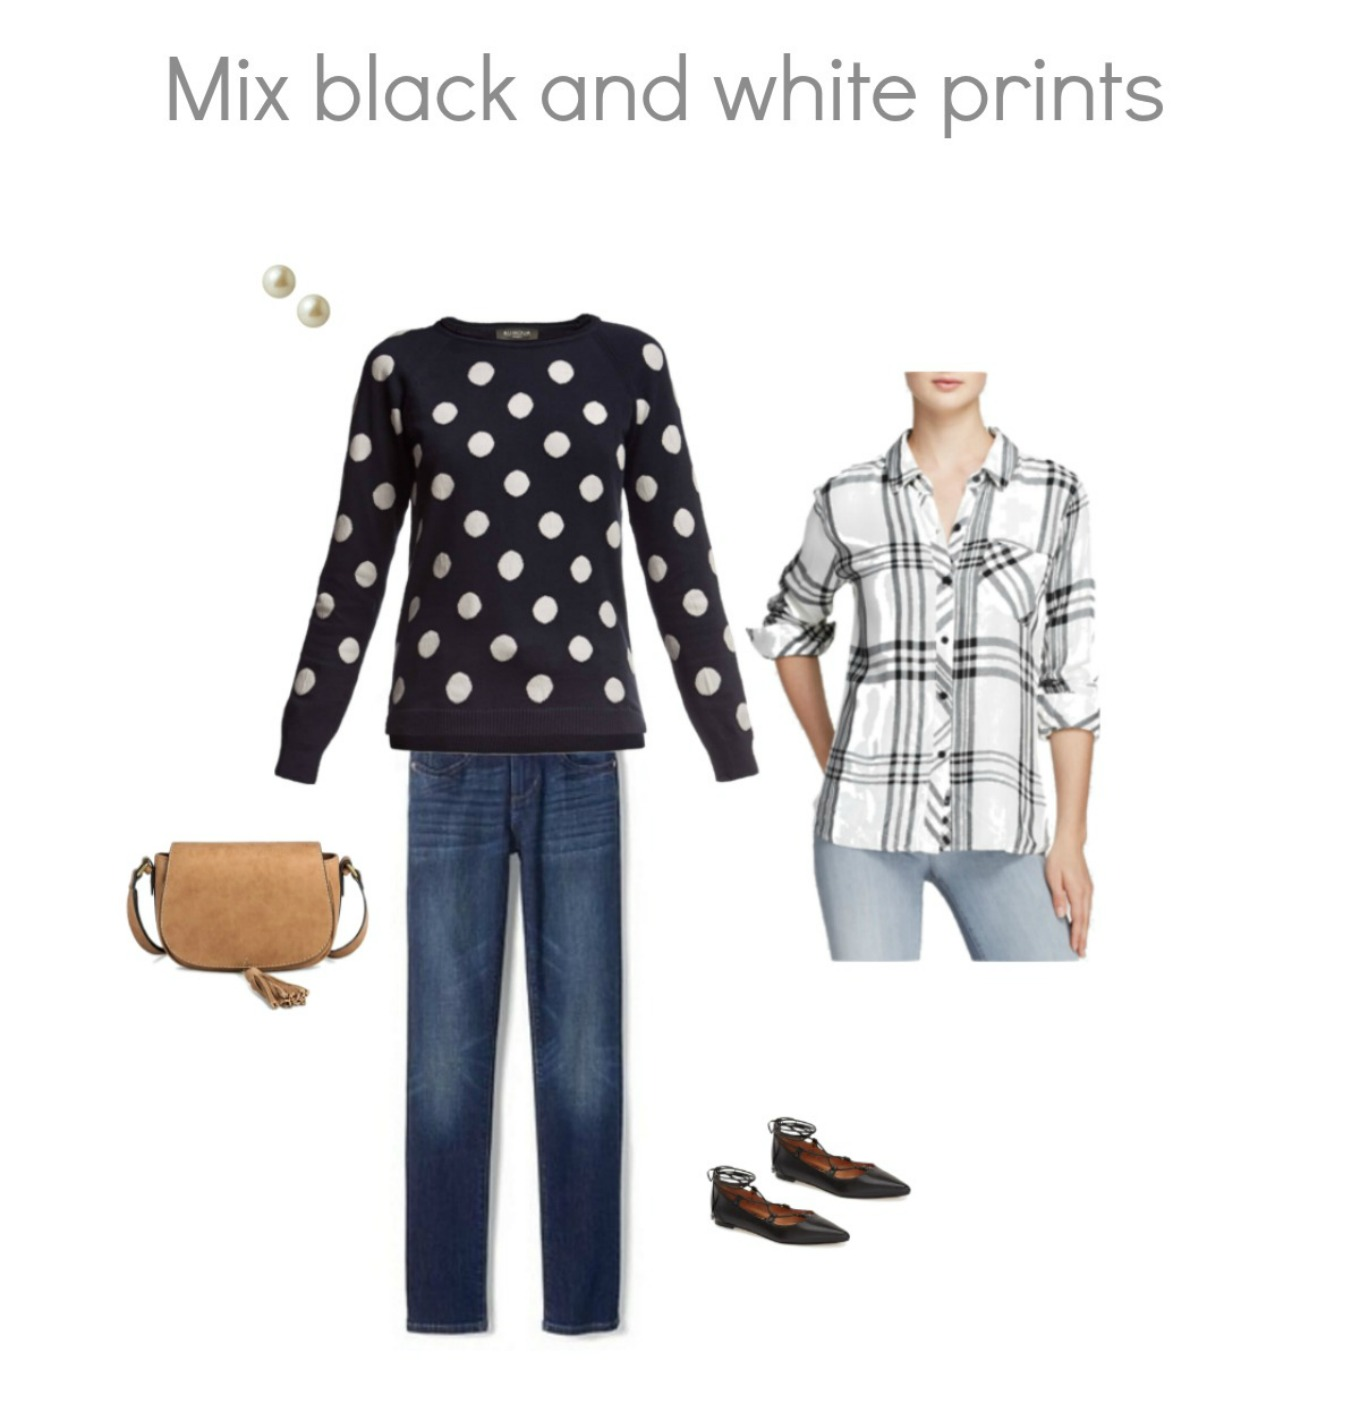 mix-black-and-white-prints